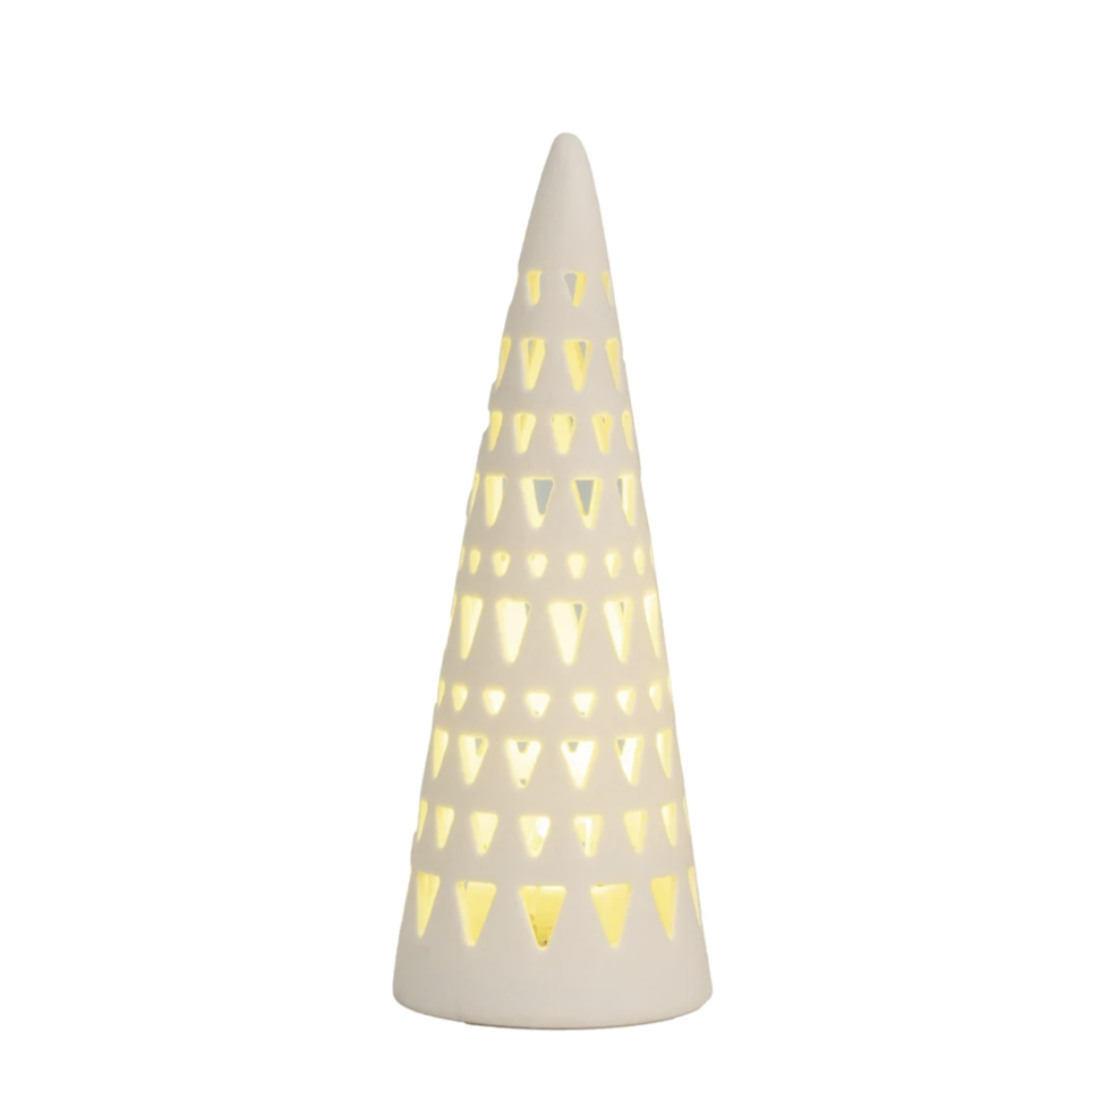 LED MINI LIGHT FIR TREE - LARGE